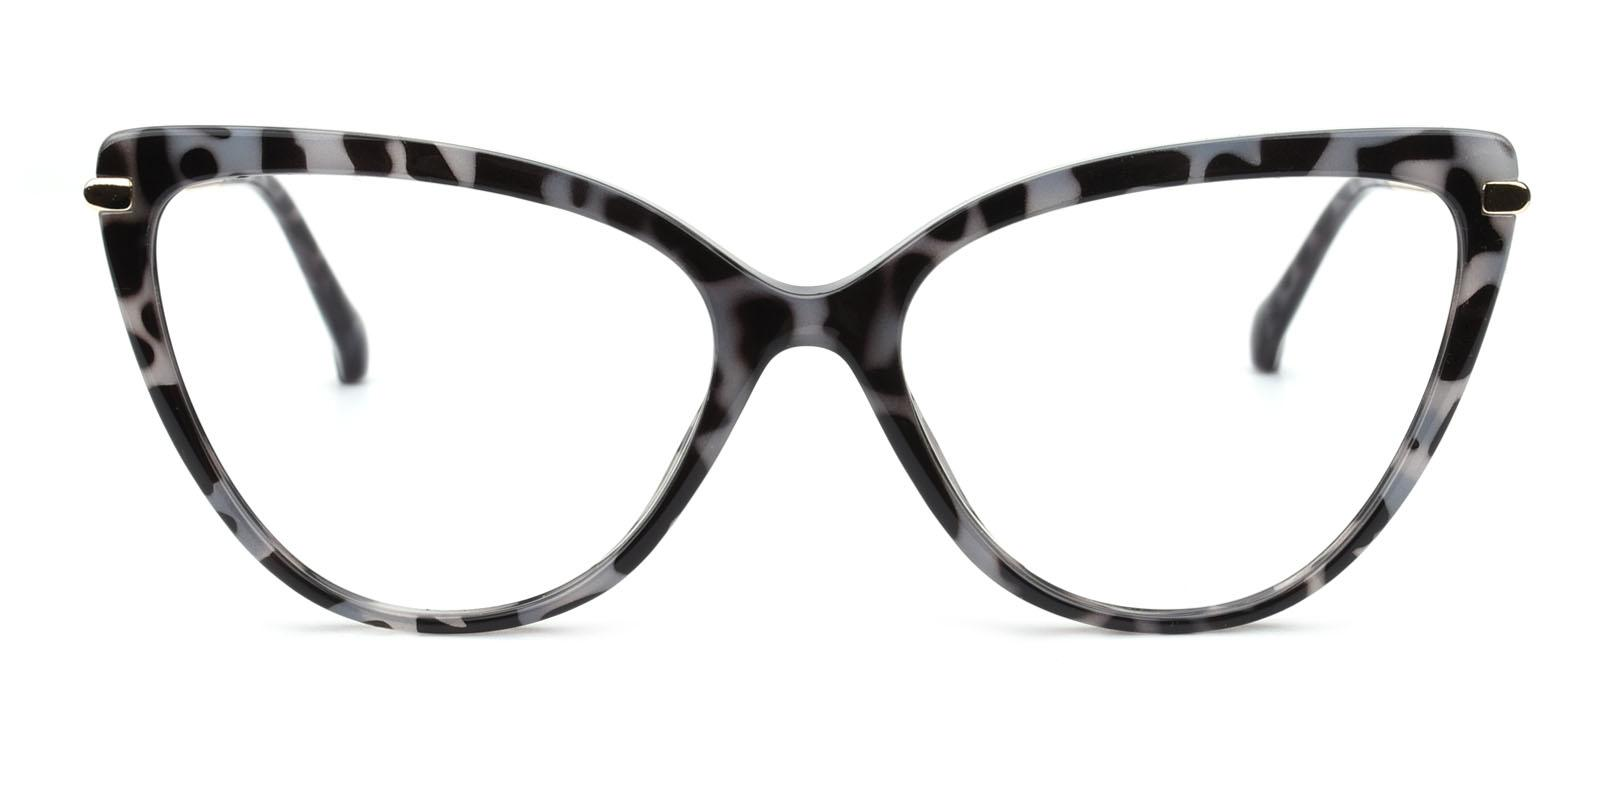 Doris-Leopard-Cat-Combination-Eyeglasses-additional2